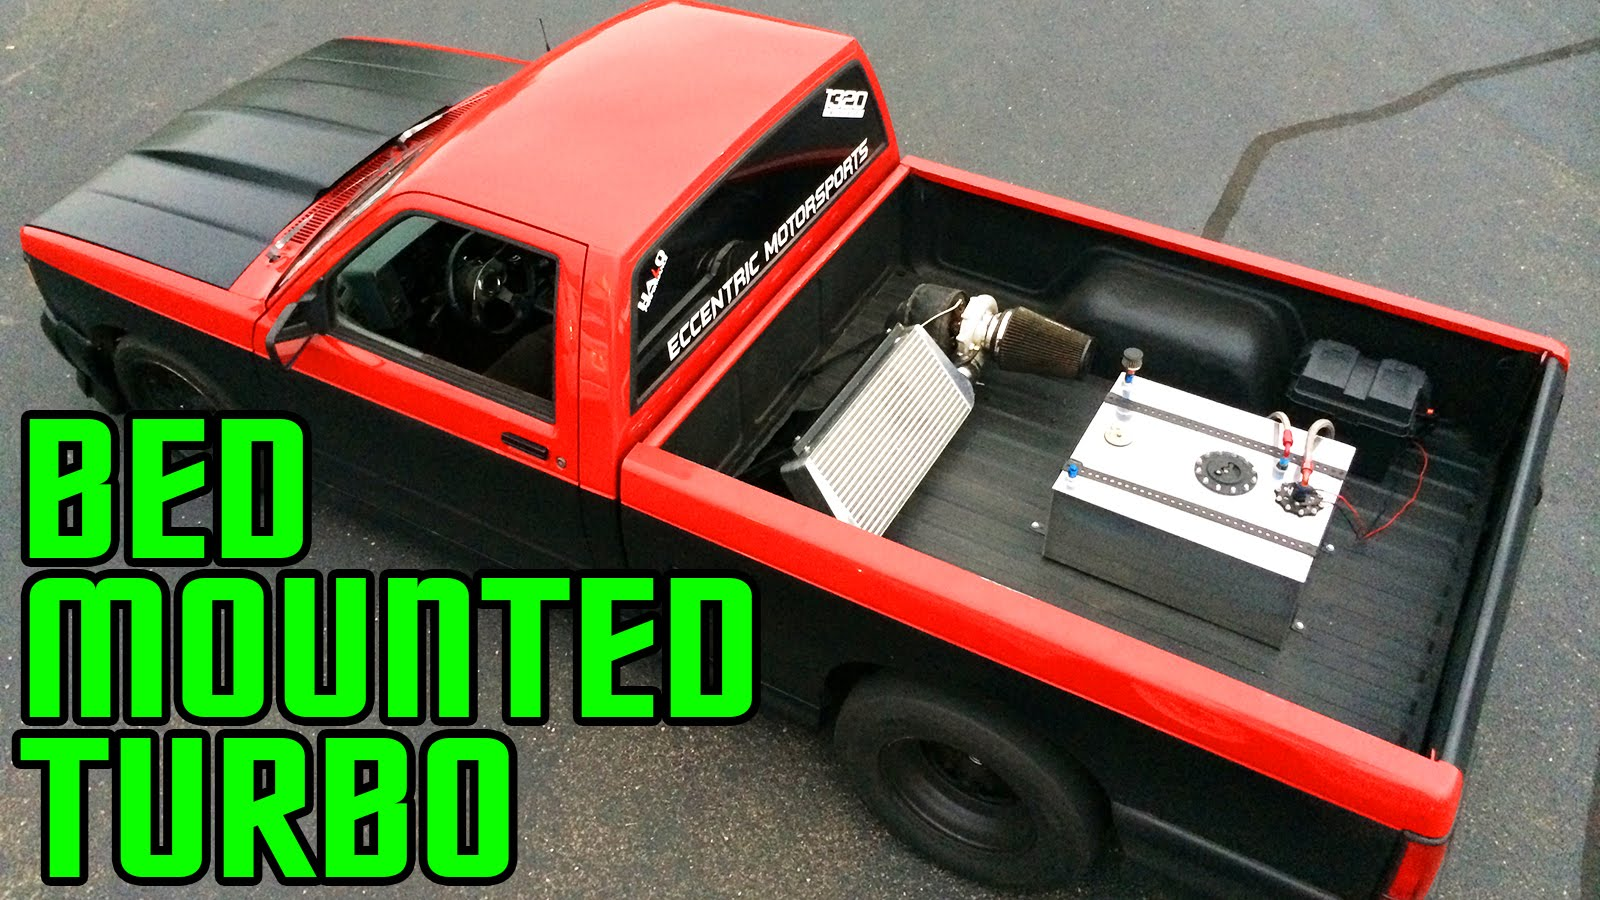 This GMC Sonoma GT Unconventionally Hauls With A Bed-Mounted Turbo